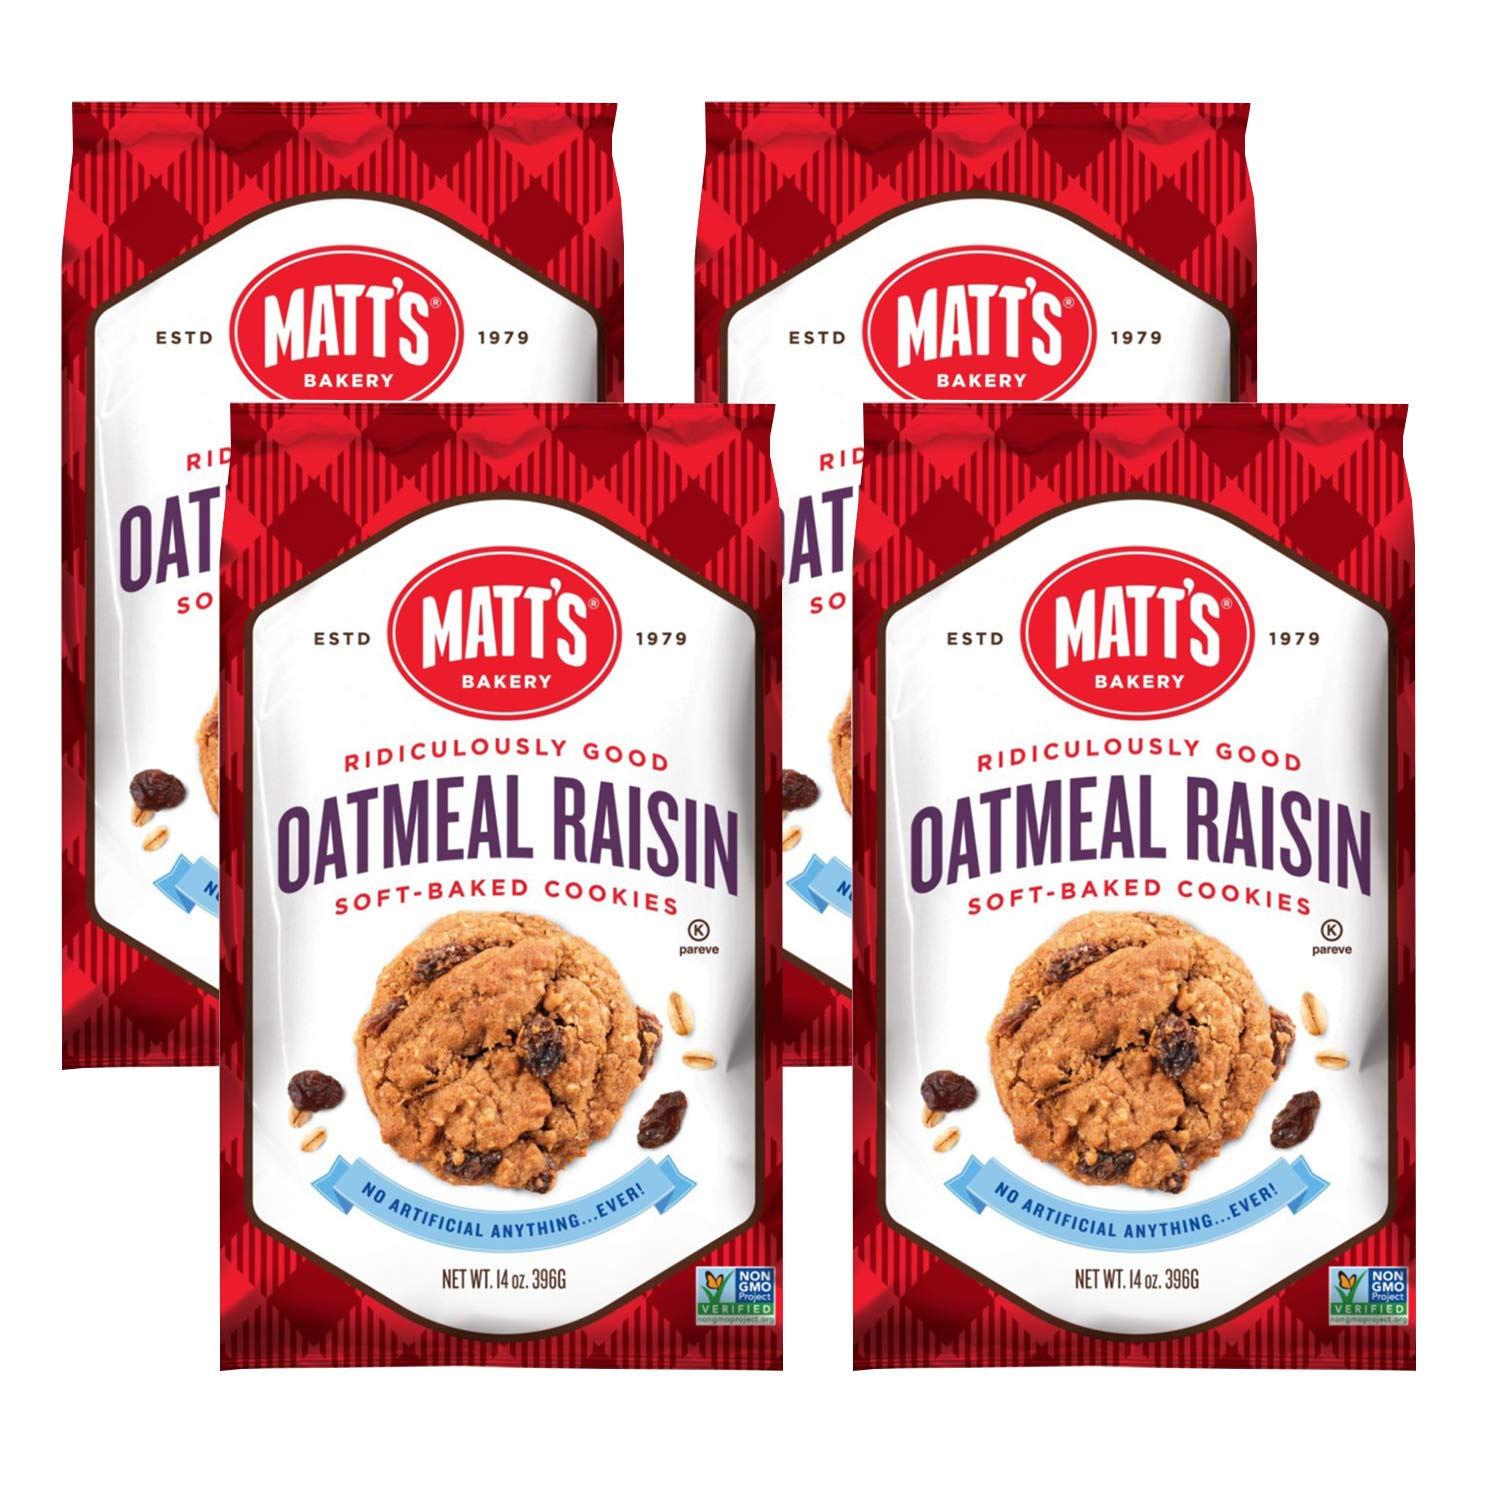 Matt's Cookies Oatmeal Raisin Soft-Baked Cookies, All Natural Ingredients, Non GMO, 14 oz Bag, 4 Count